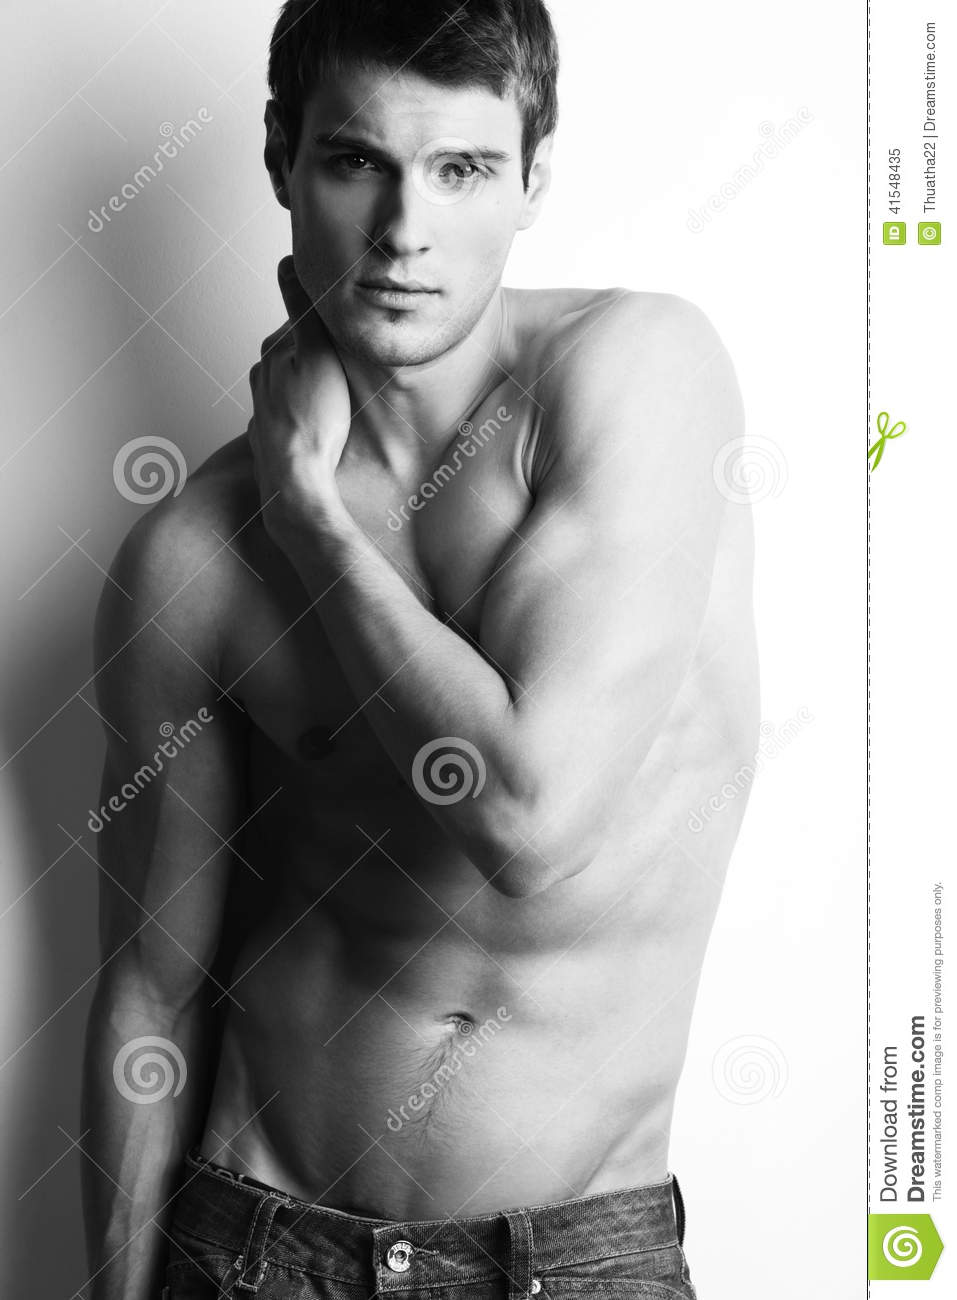 Download Handsome Muscular Guy With Naked Torso Stock Image - Image of robust, biceps: 41548435